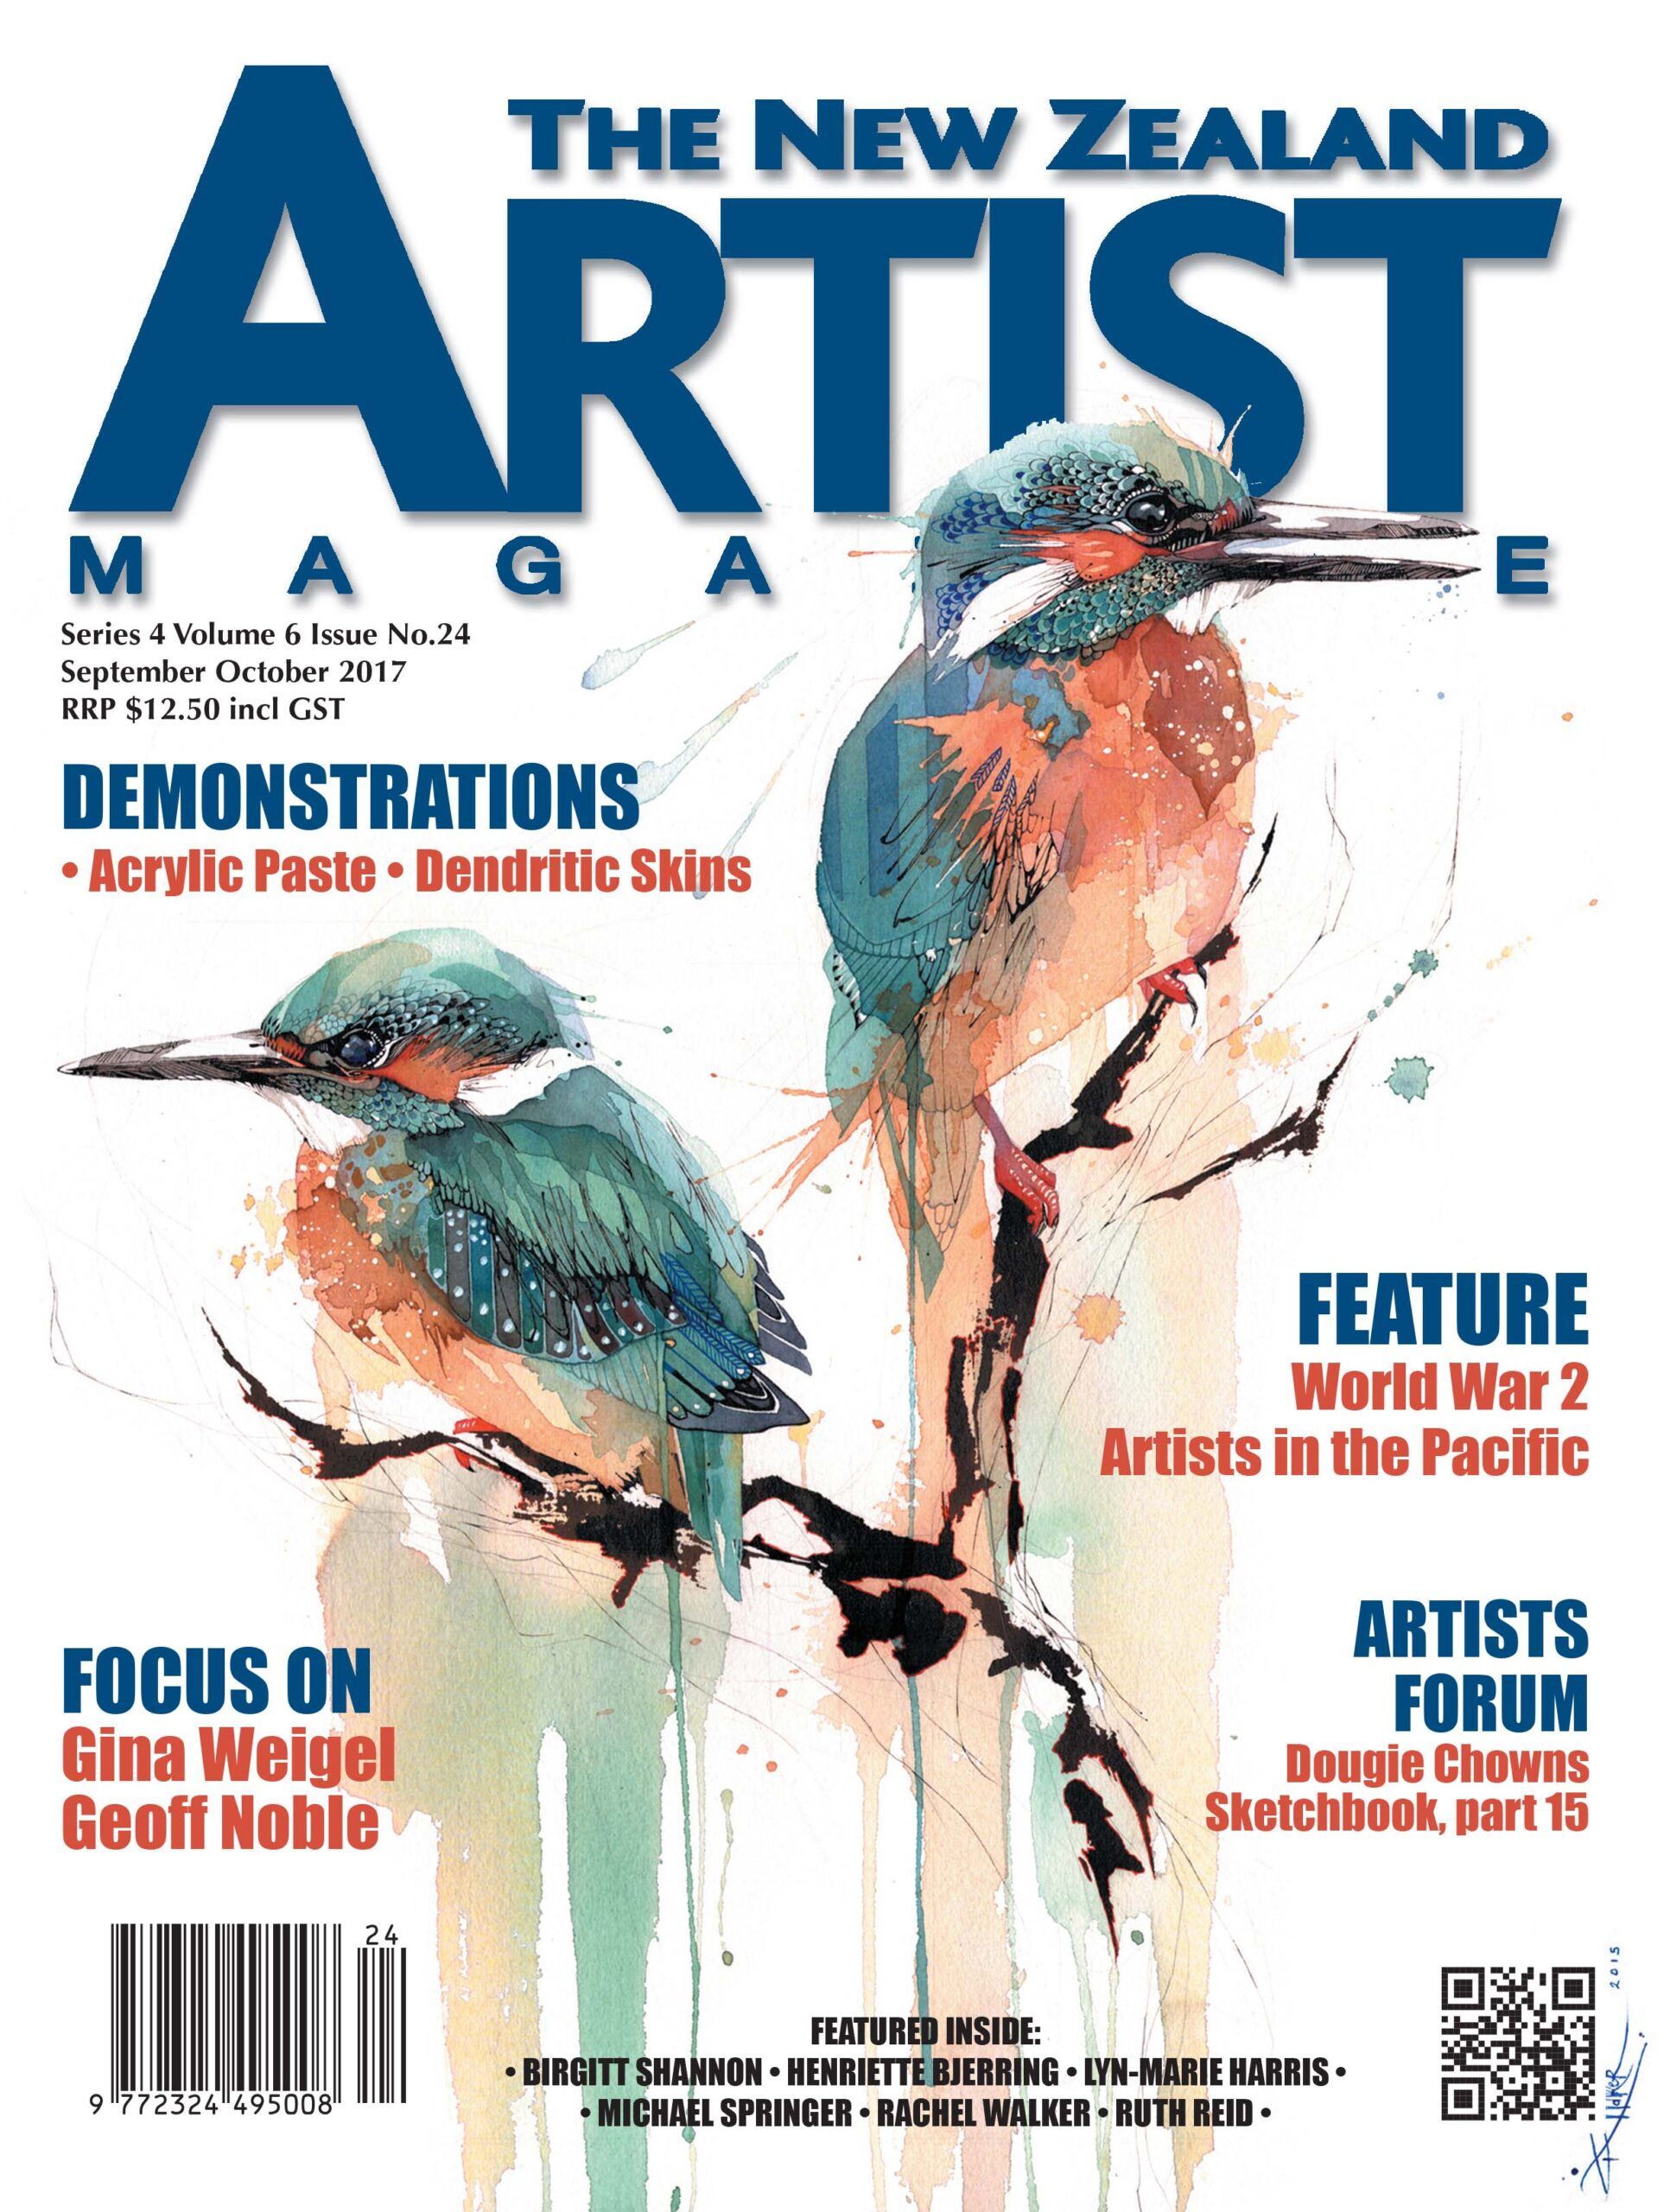 September/October 2017 Volume 1 Issue 24 - Aotearoa Artist